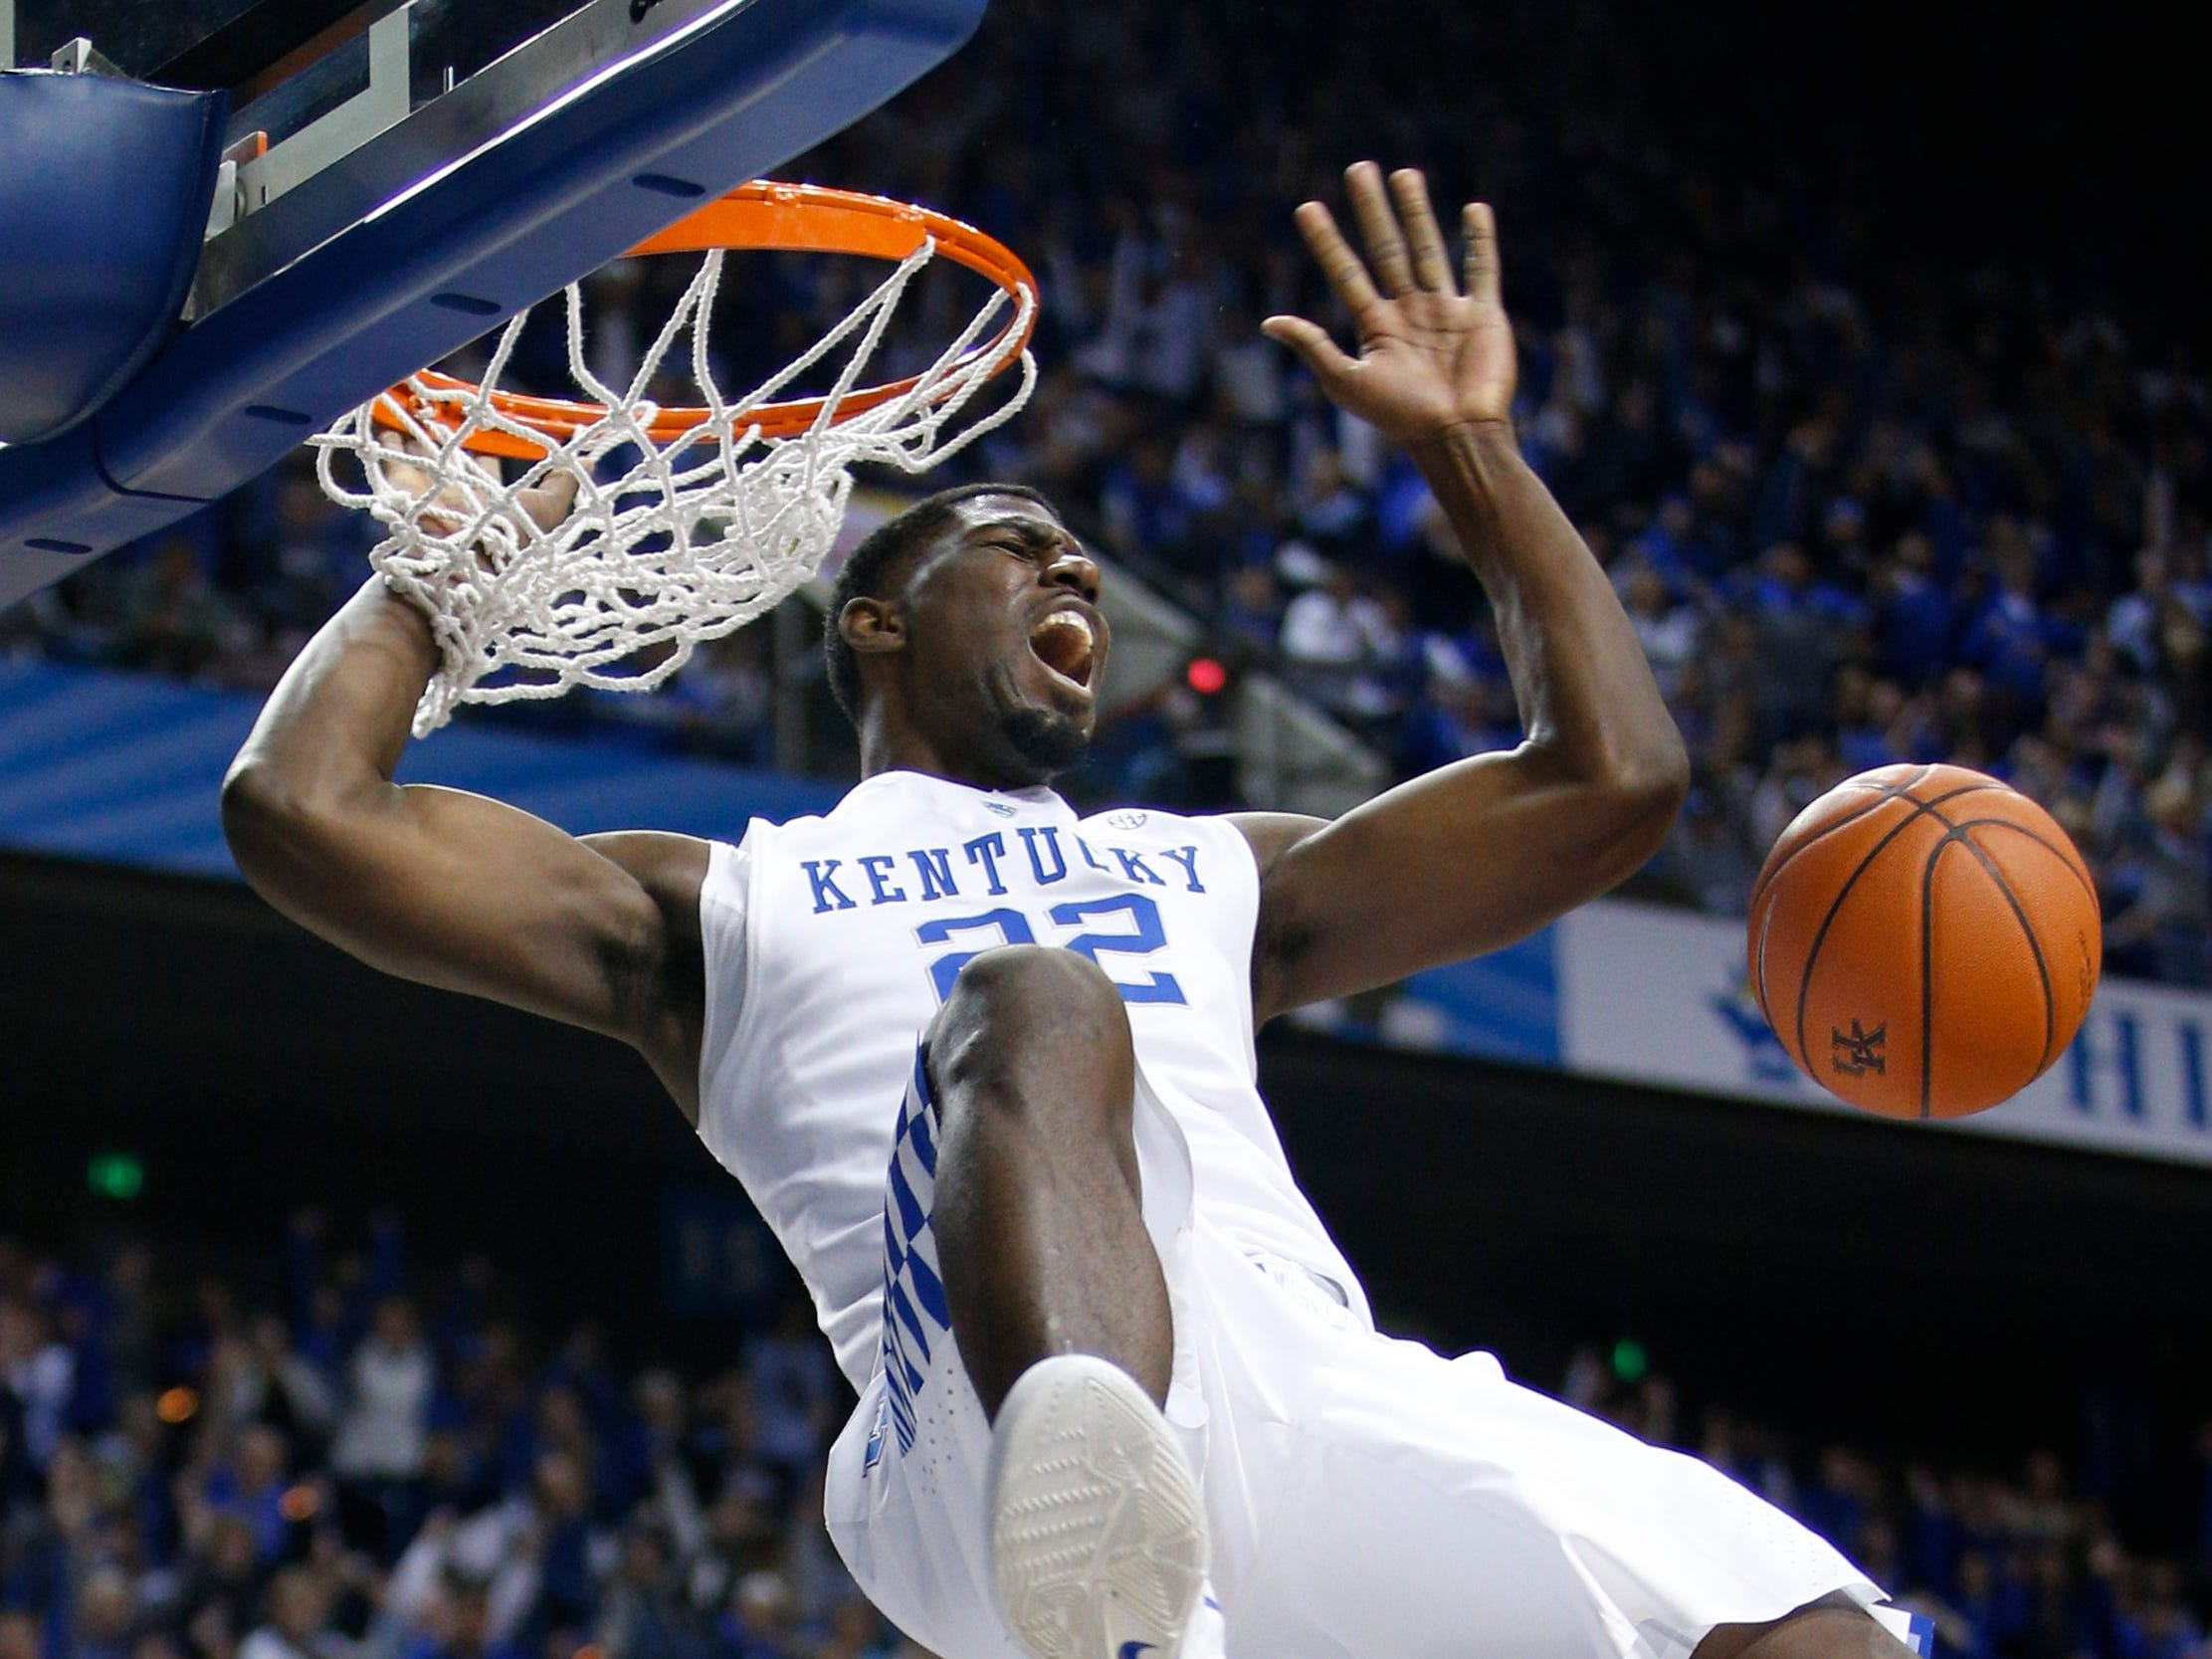 Kentucky Basketball Our First Look At The New Wildcats In: ESPNU To Televise UK Basketball Practice